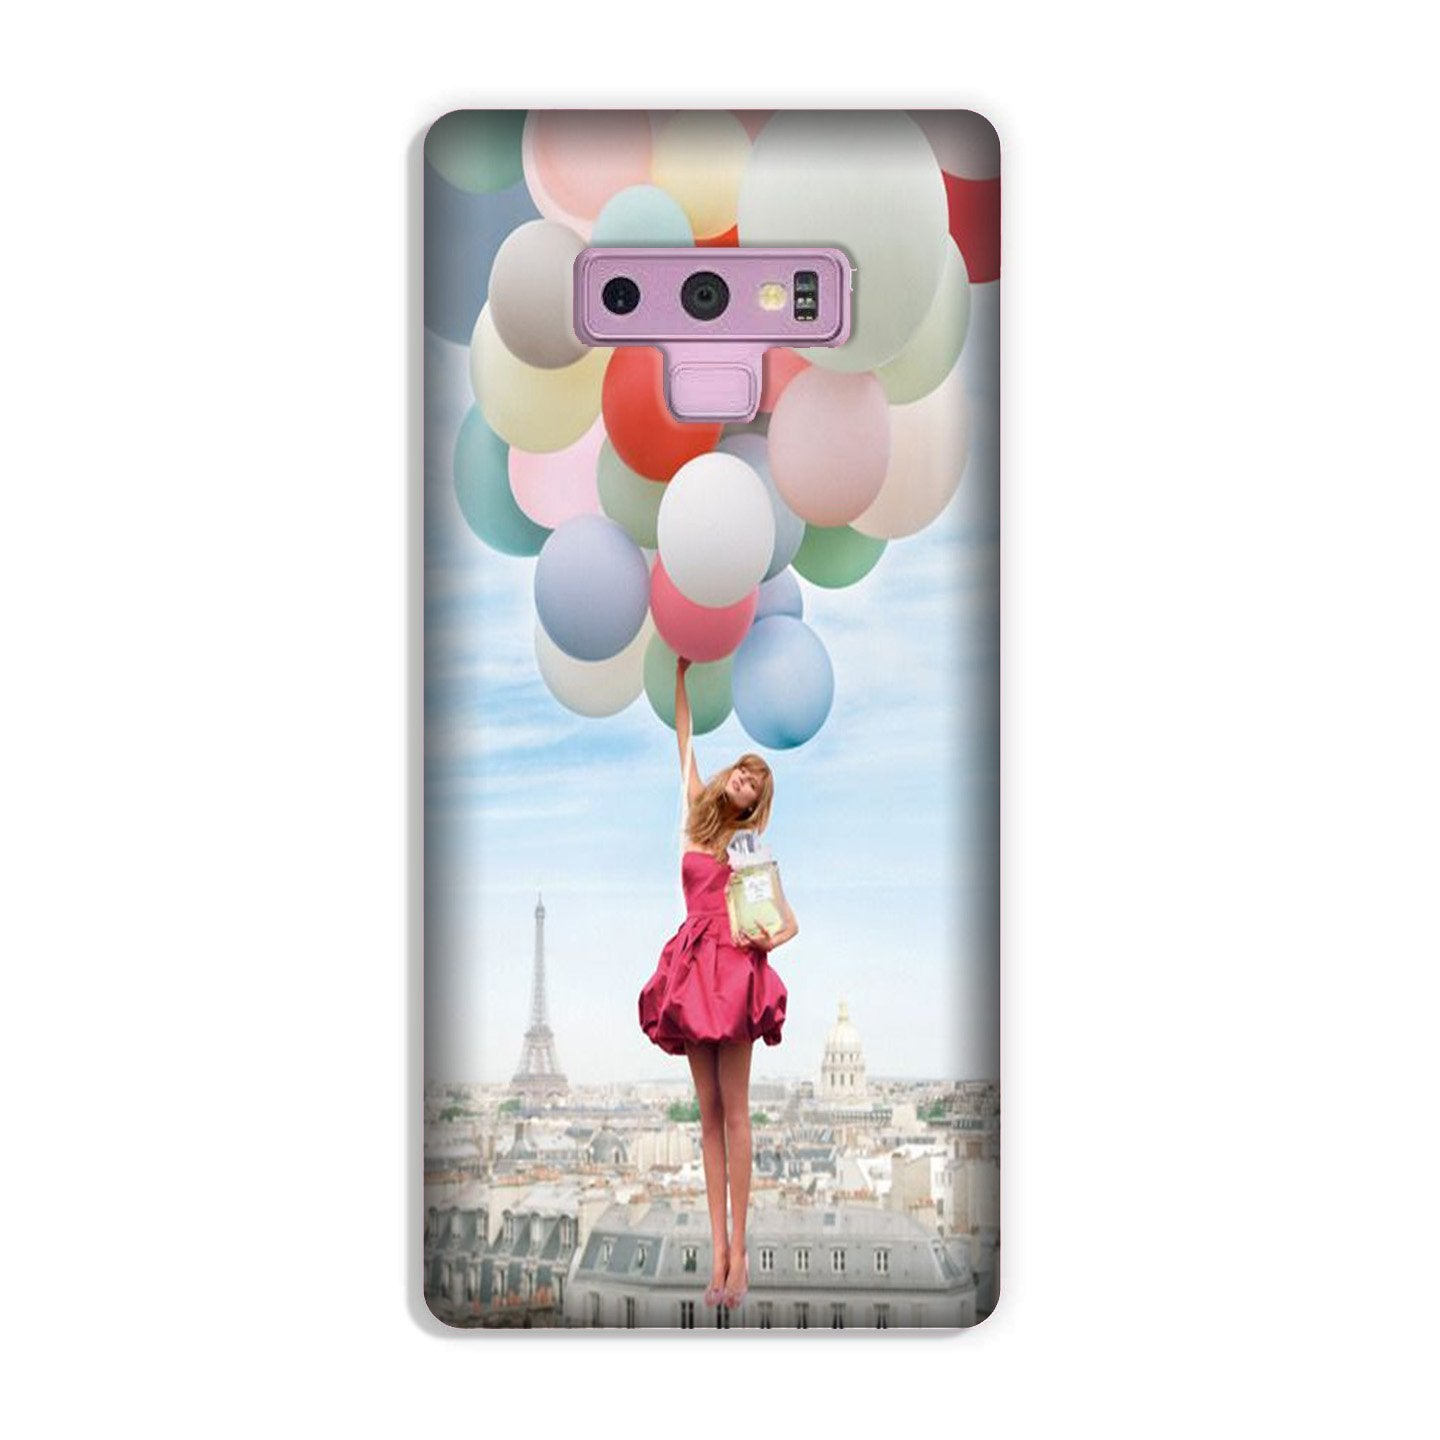 Girl with Baloon Case for Galaxy Note 9